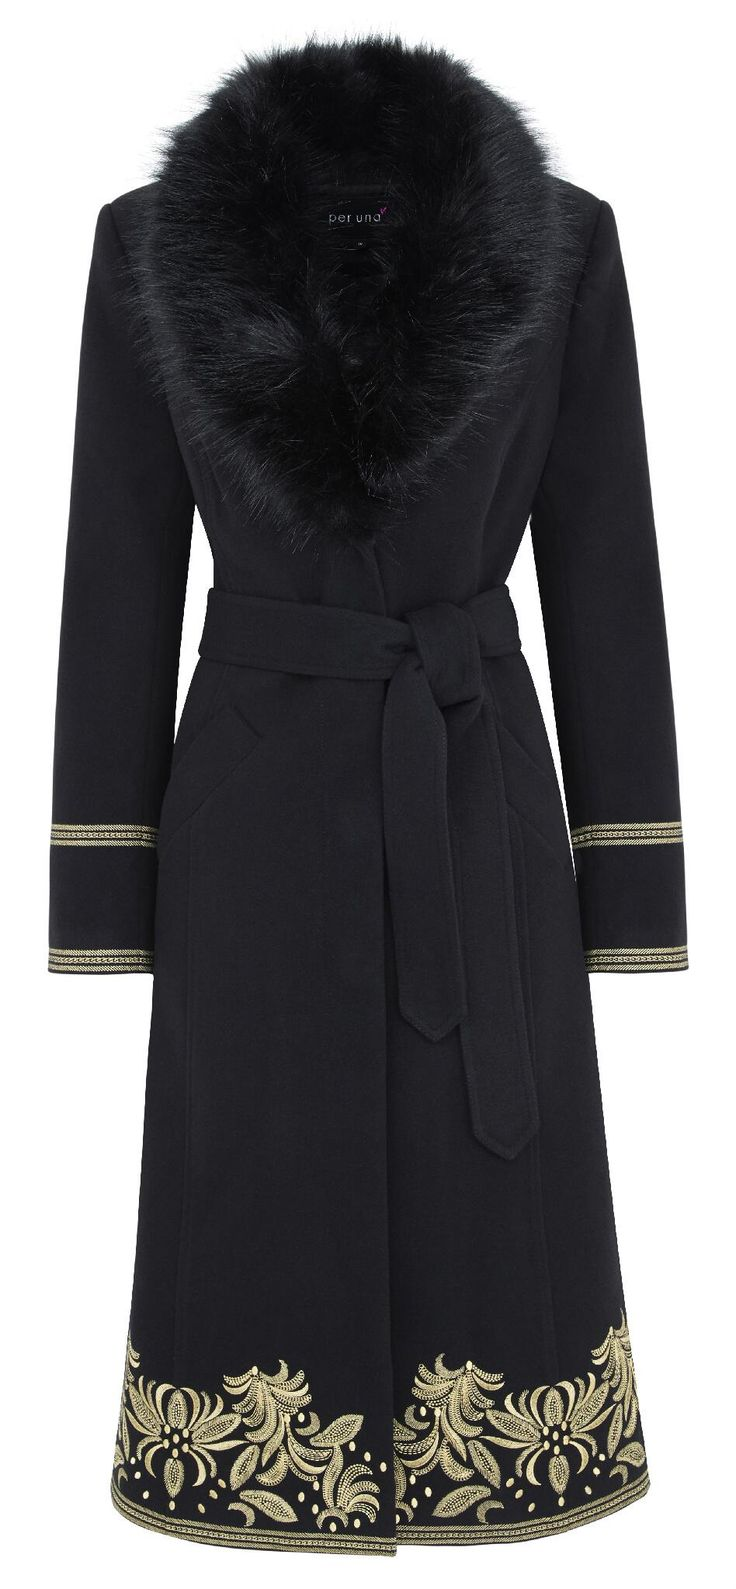 This Russian gothic coat with faux fur collar <3 would be a great addition to my wardrobe.